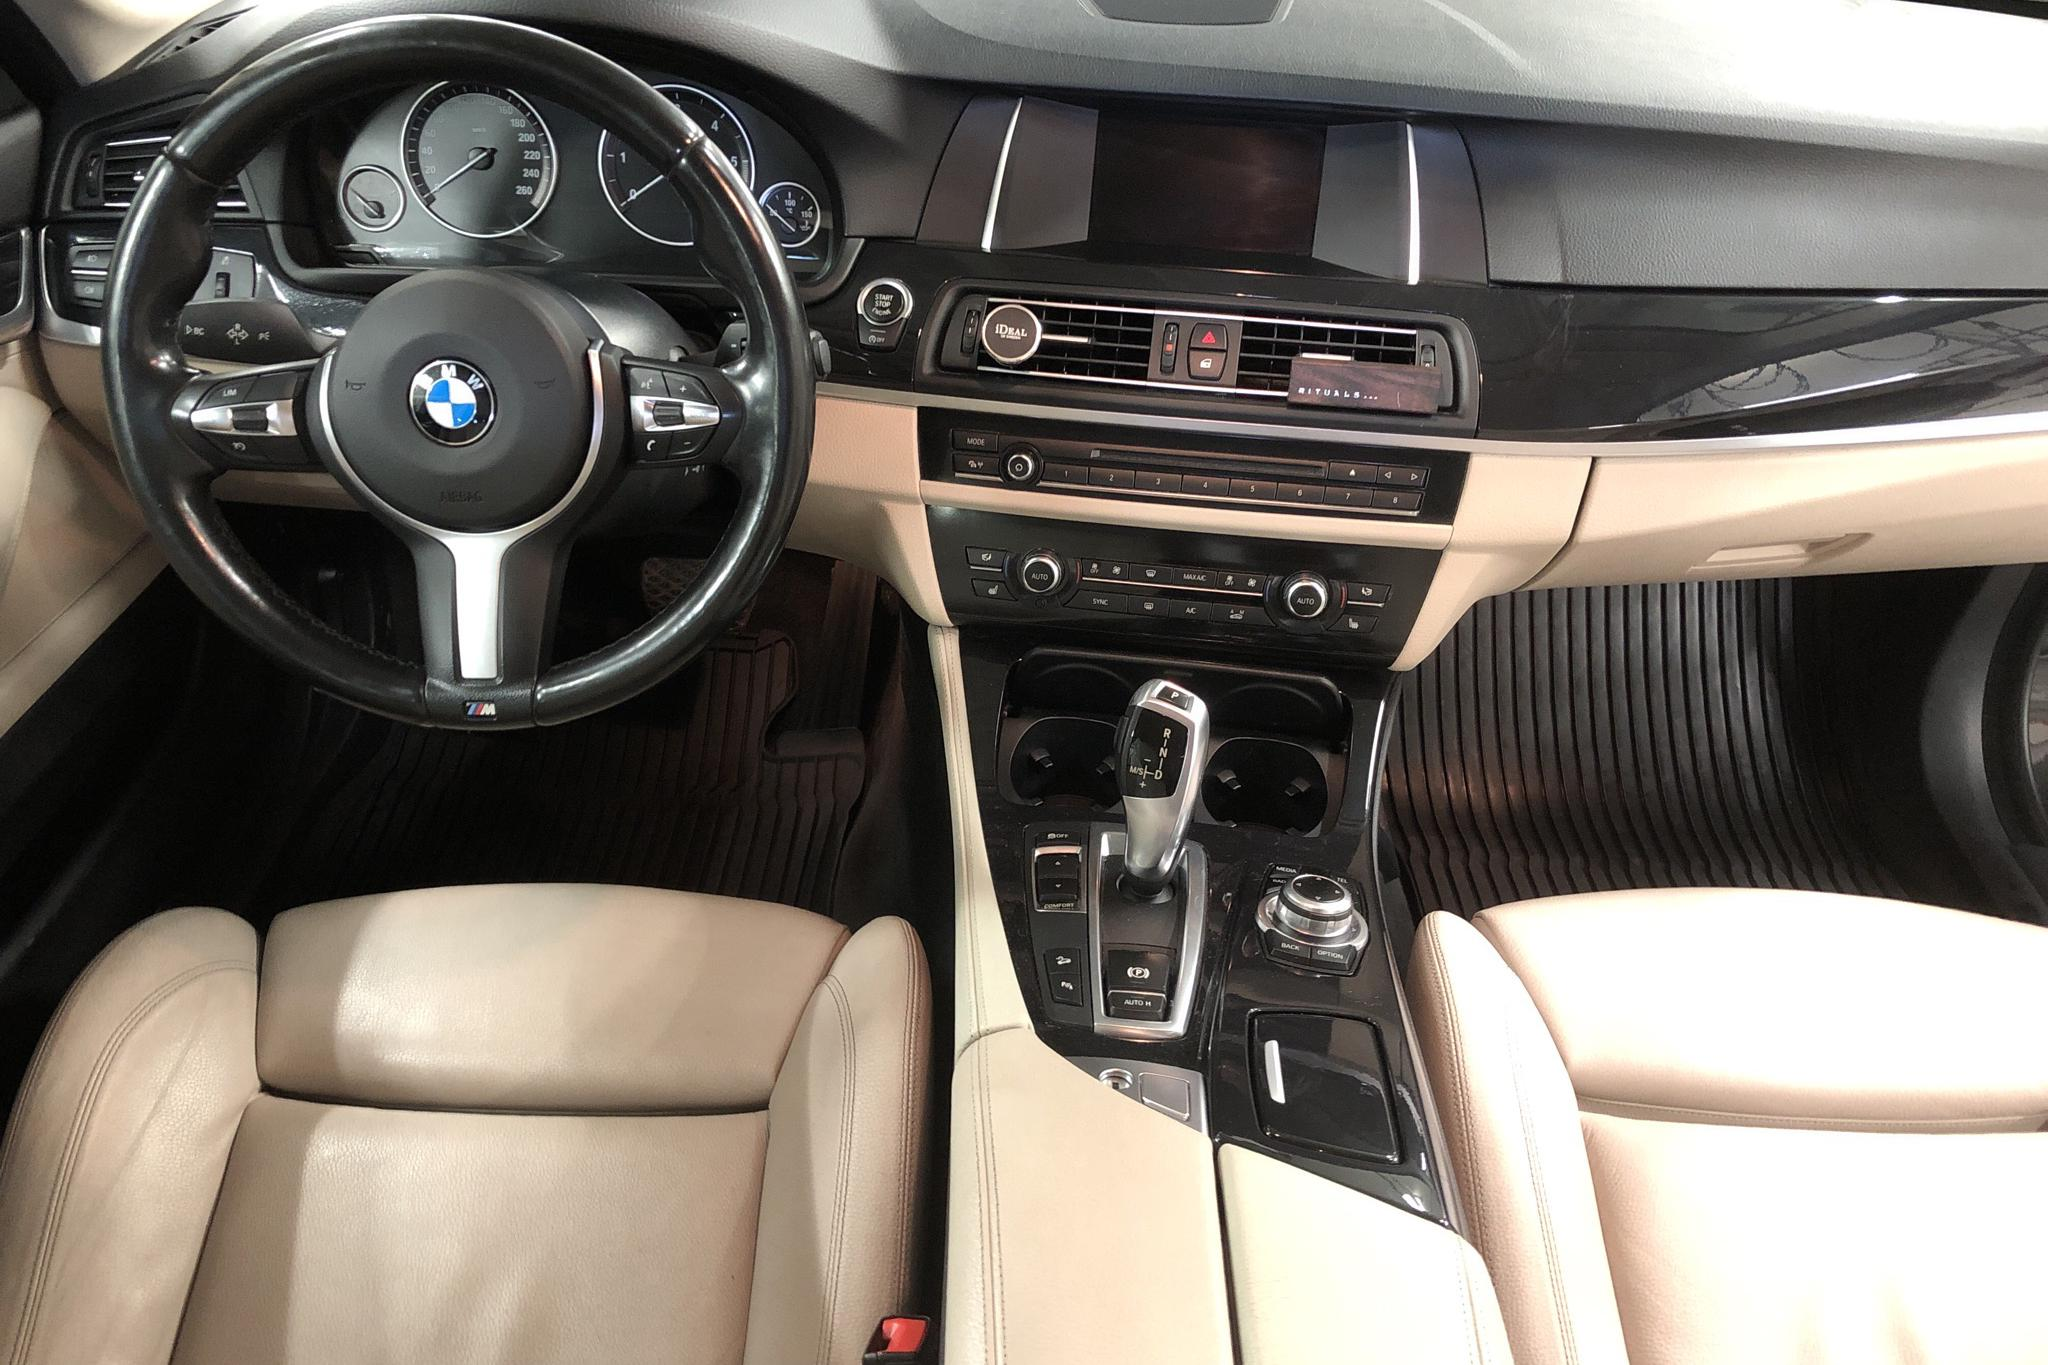 BMW 520d xDrive Touring, F11 (190hk) - 131 290 km - Automatic - brown - 2016